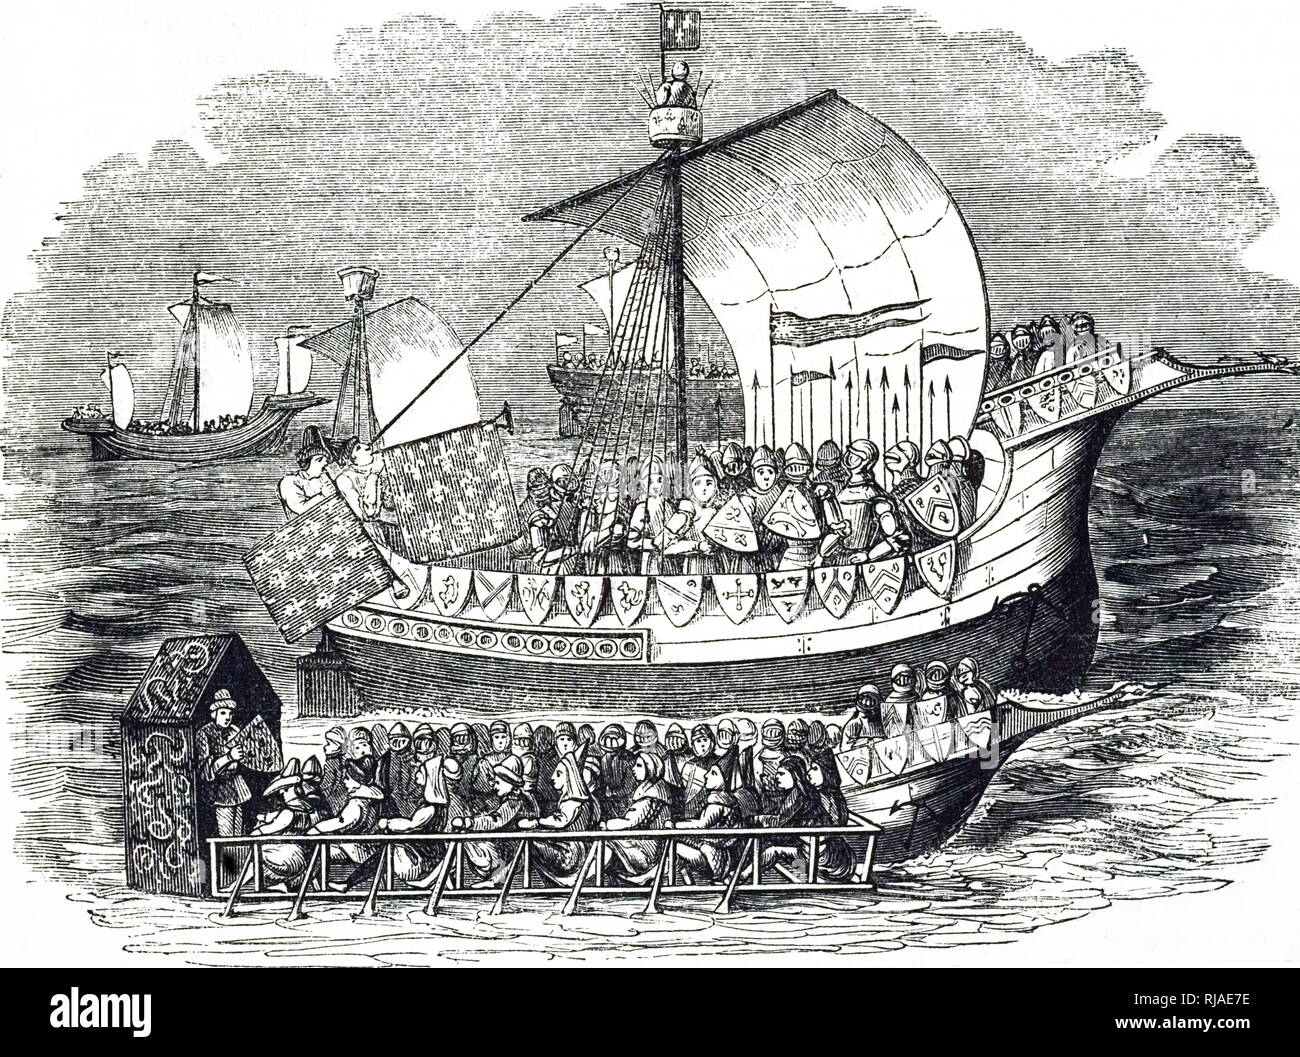 Illustration showing a fifteenth-century warship and galley. 1851 - Stock Image